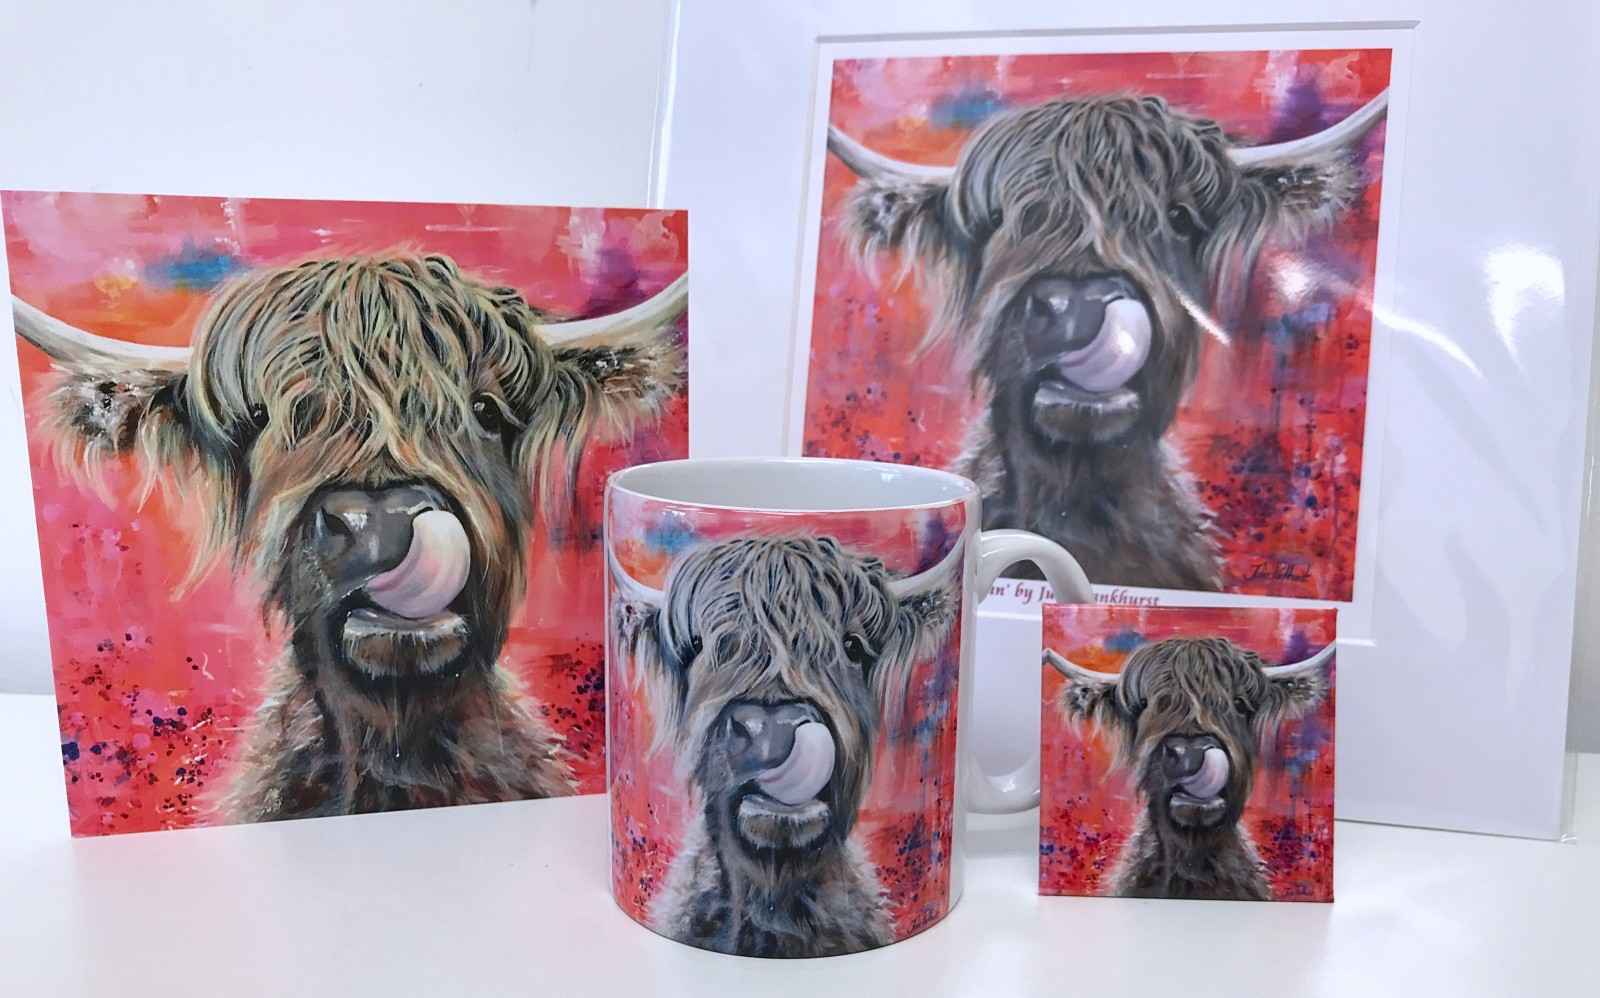 Highland Cow Brian Gift Collection Pankhurst Cards and Gifts